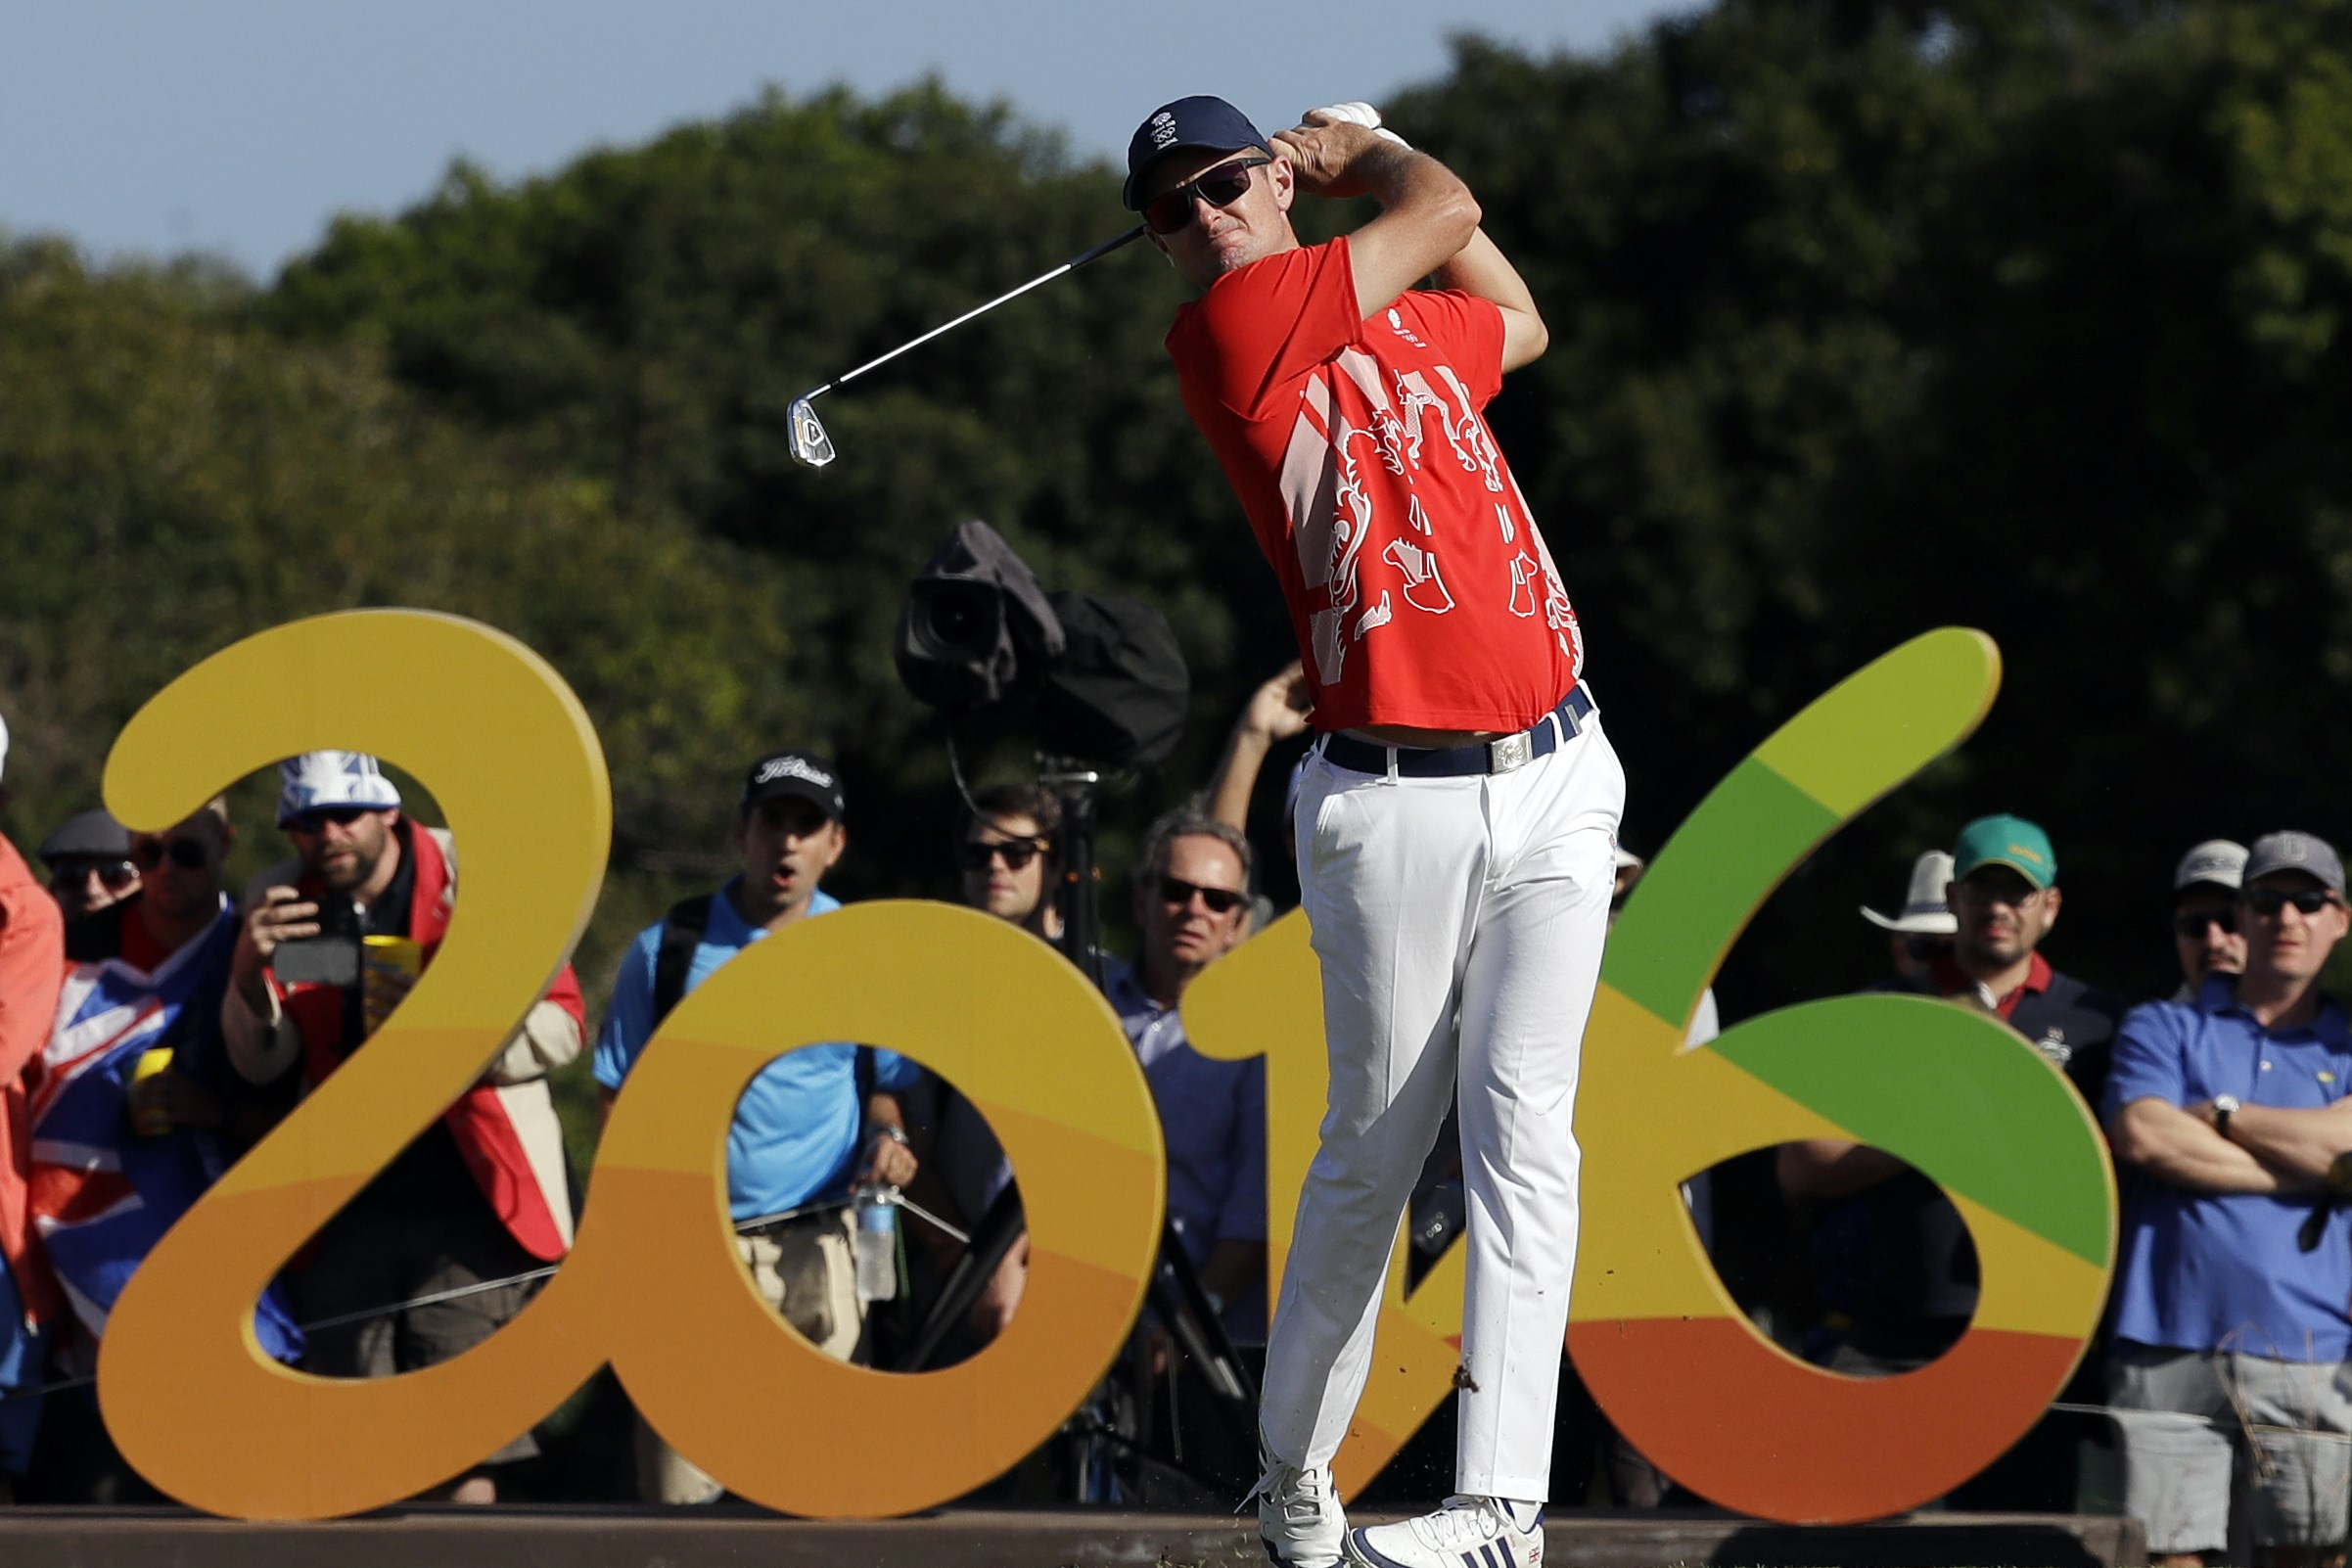 Justin Rose of Great Britain, tees off on the 16th hole during the third round of the men's golf event at the 2016 Summer Olympics in Rio de Janeiro, Brazil, Saturday, Aug. 13, 2016. (AP Photo/Alastair Grant)